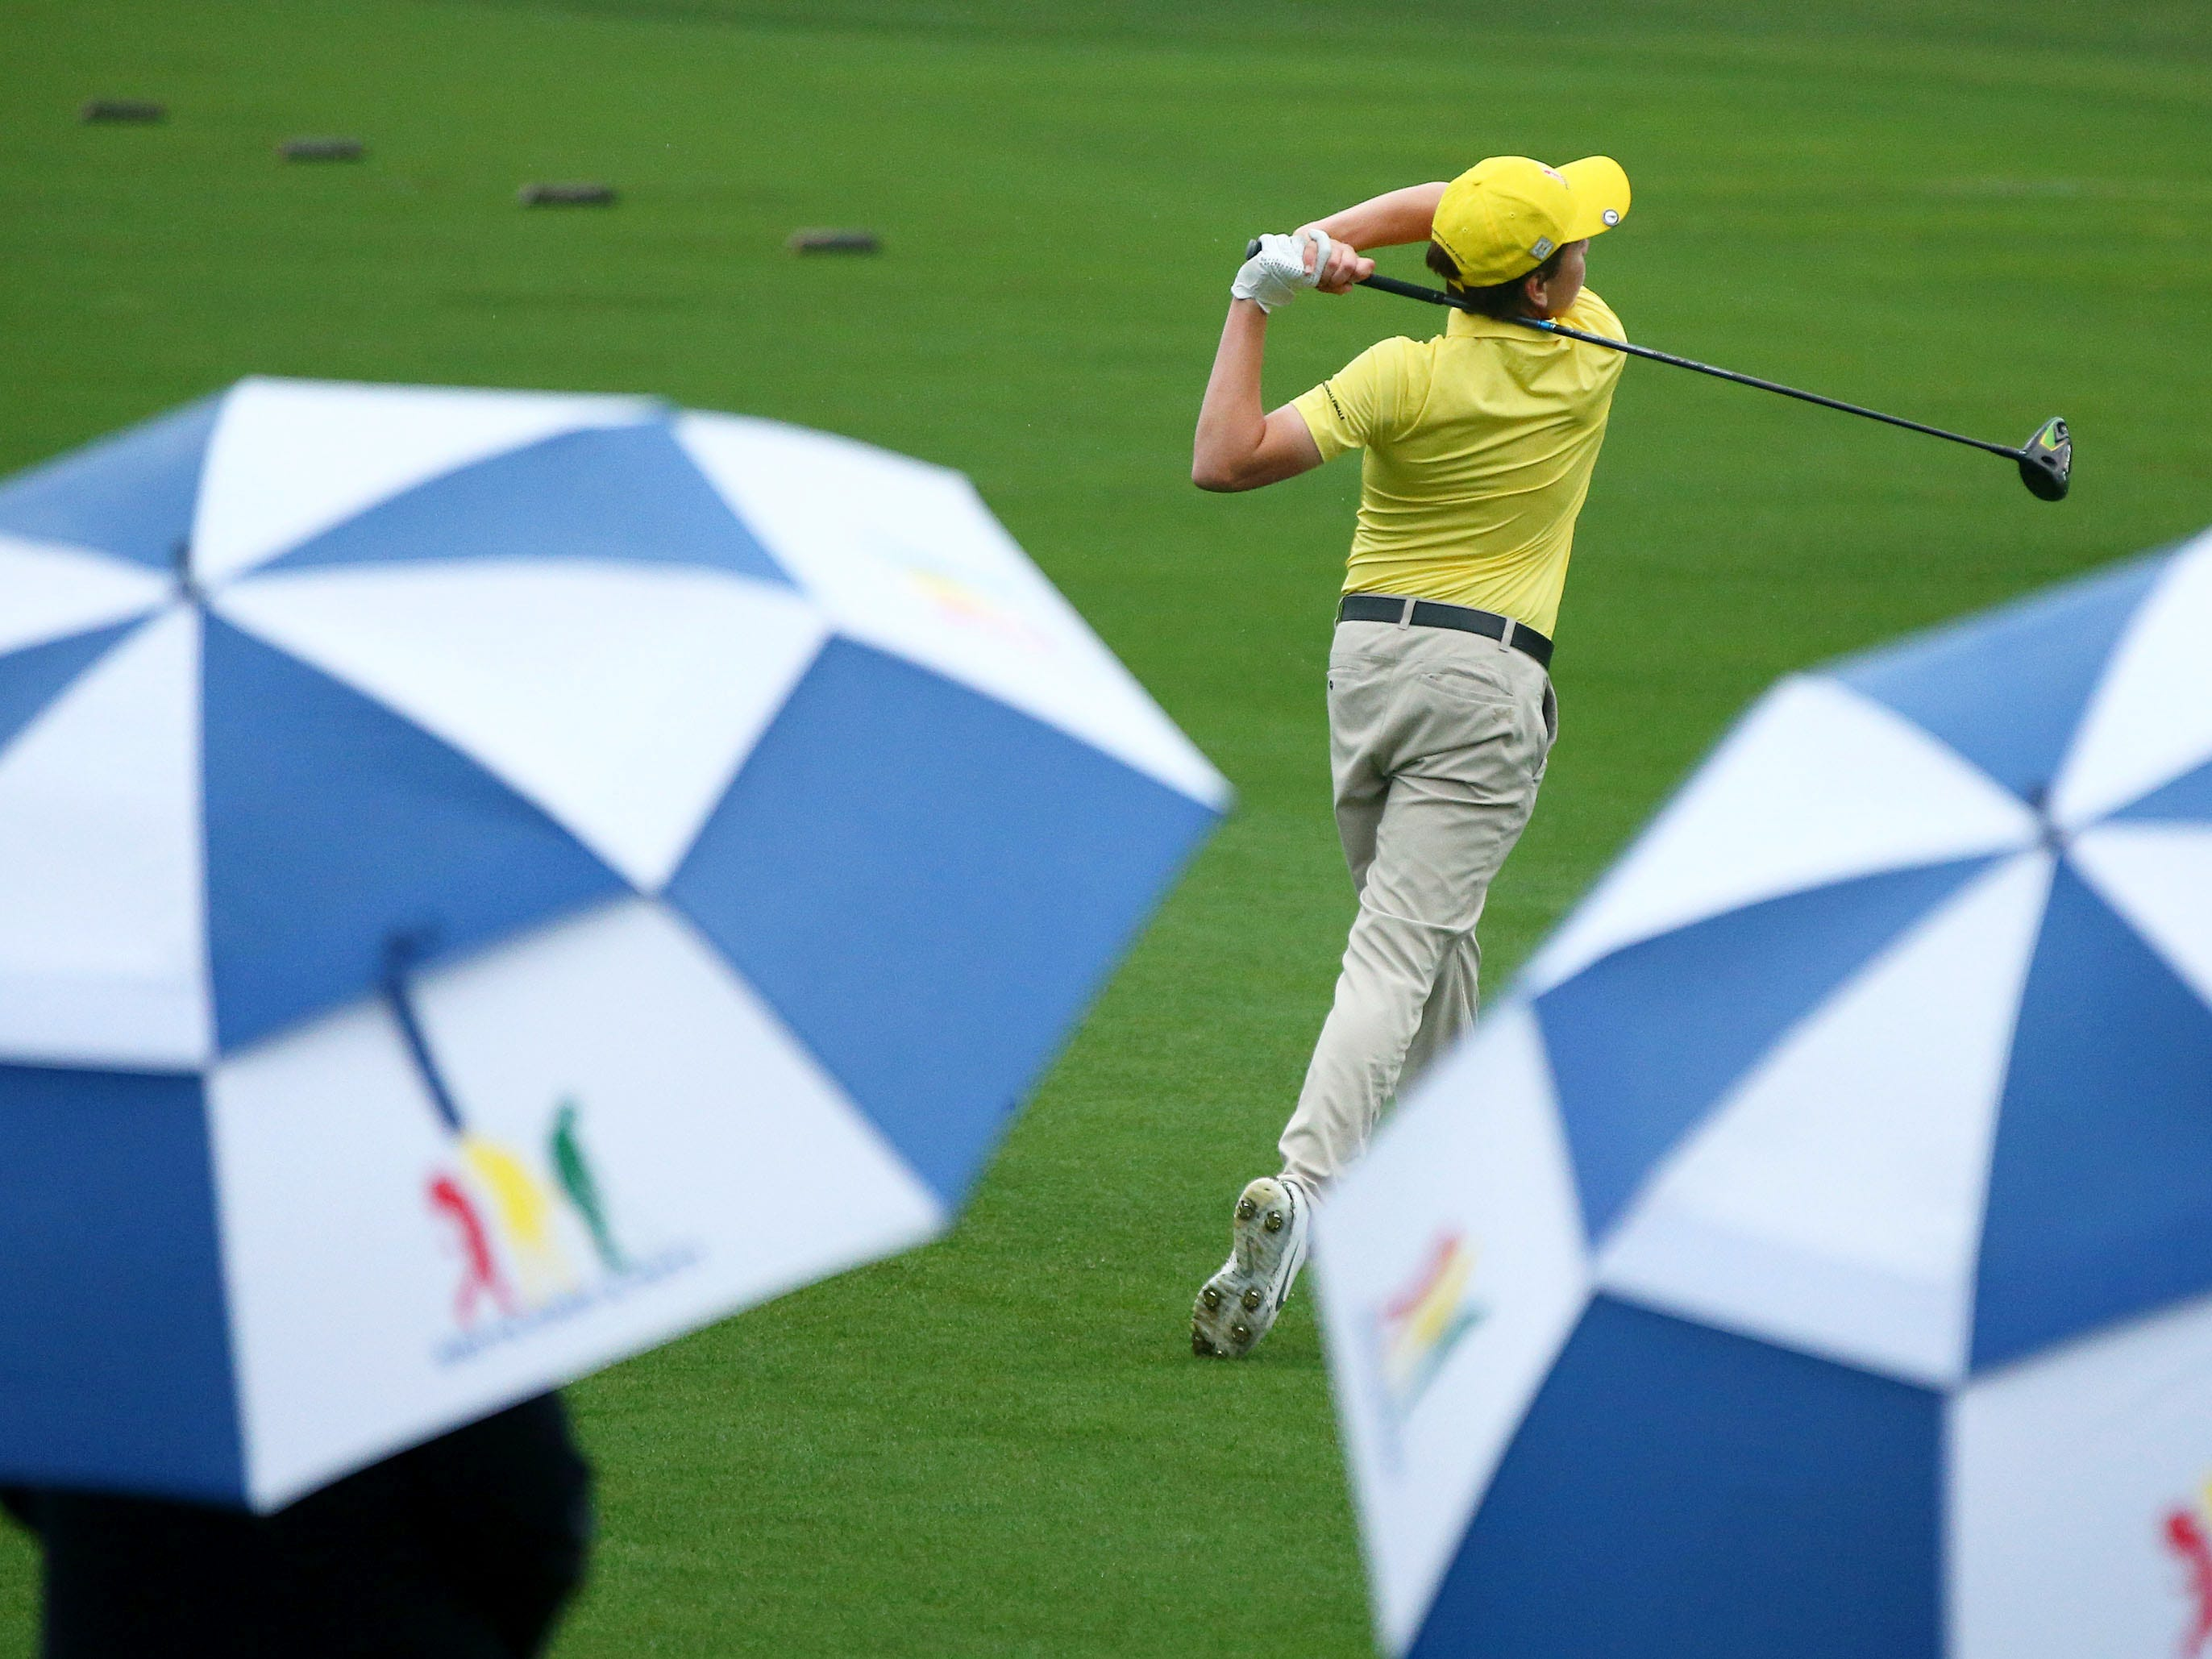 Apr 7, 2019; Augusta, GA, USA; Tyler Kowack of San Diego, Cali. hits his drive in the rain during the finals of the Drive, Chip and Putt competition at Augusta National Golf Club. Mandatory Credit: Rob Schumacher-USA TODAY Sports